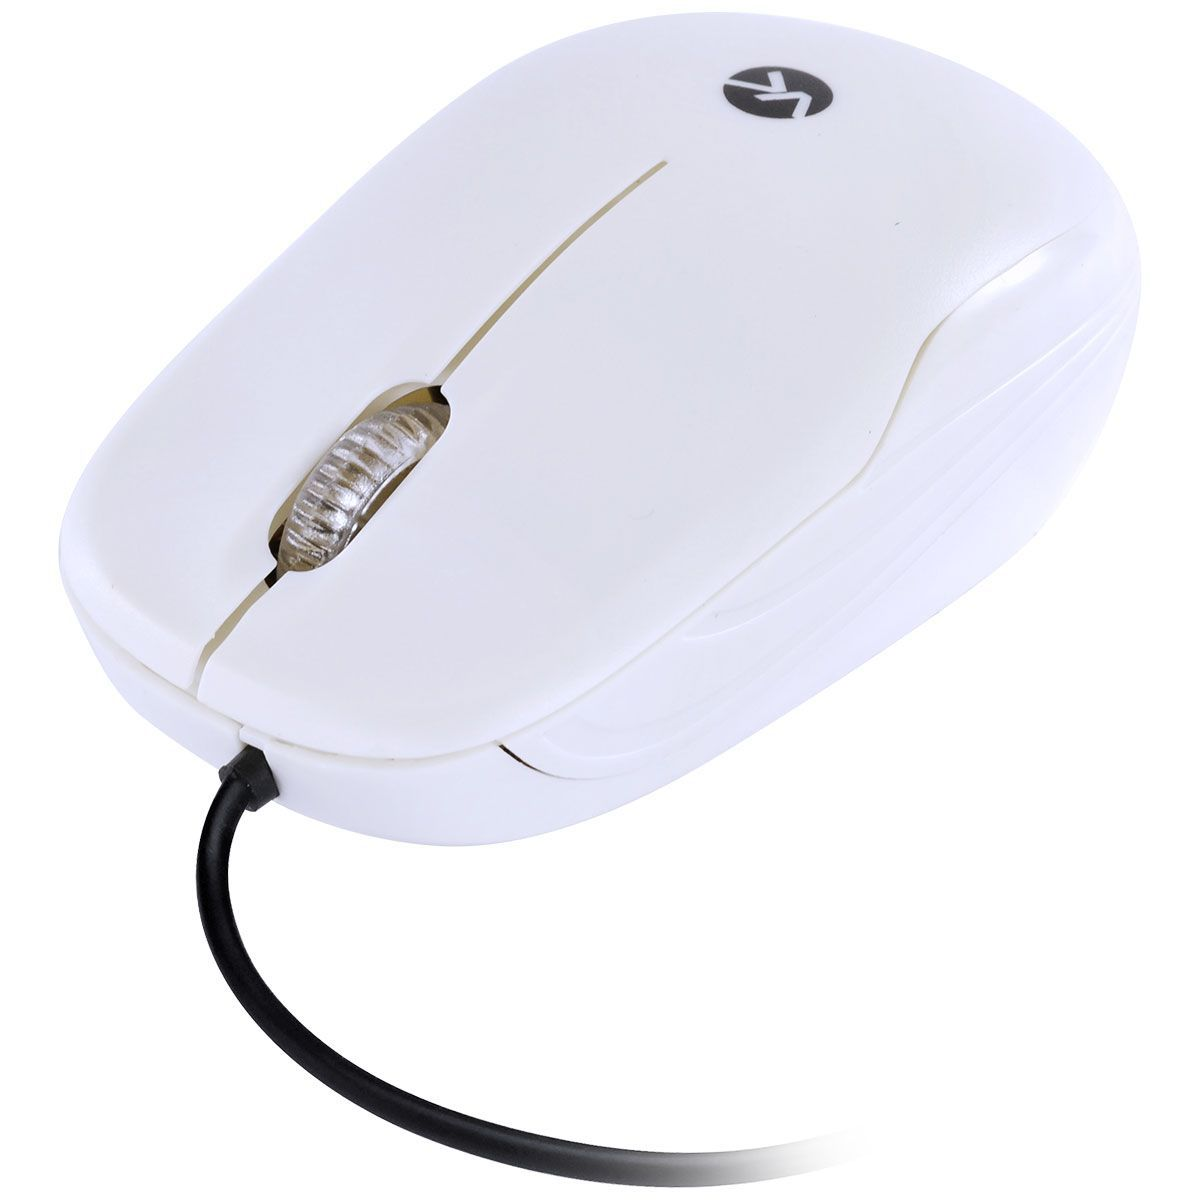 MOUSE USB DYNAMIC COLOR 1200DPI 1.8MTS BRANCO DM138 - VINIK